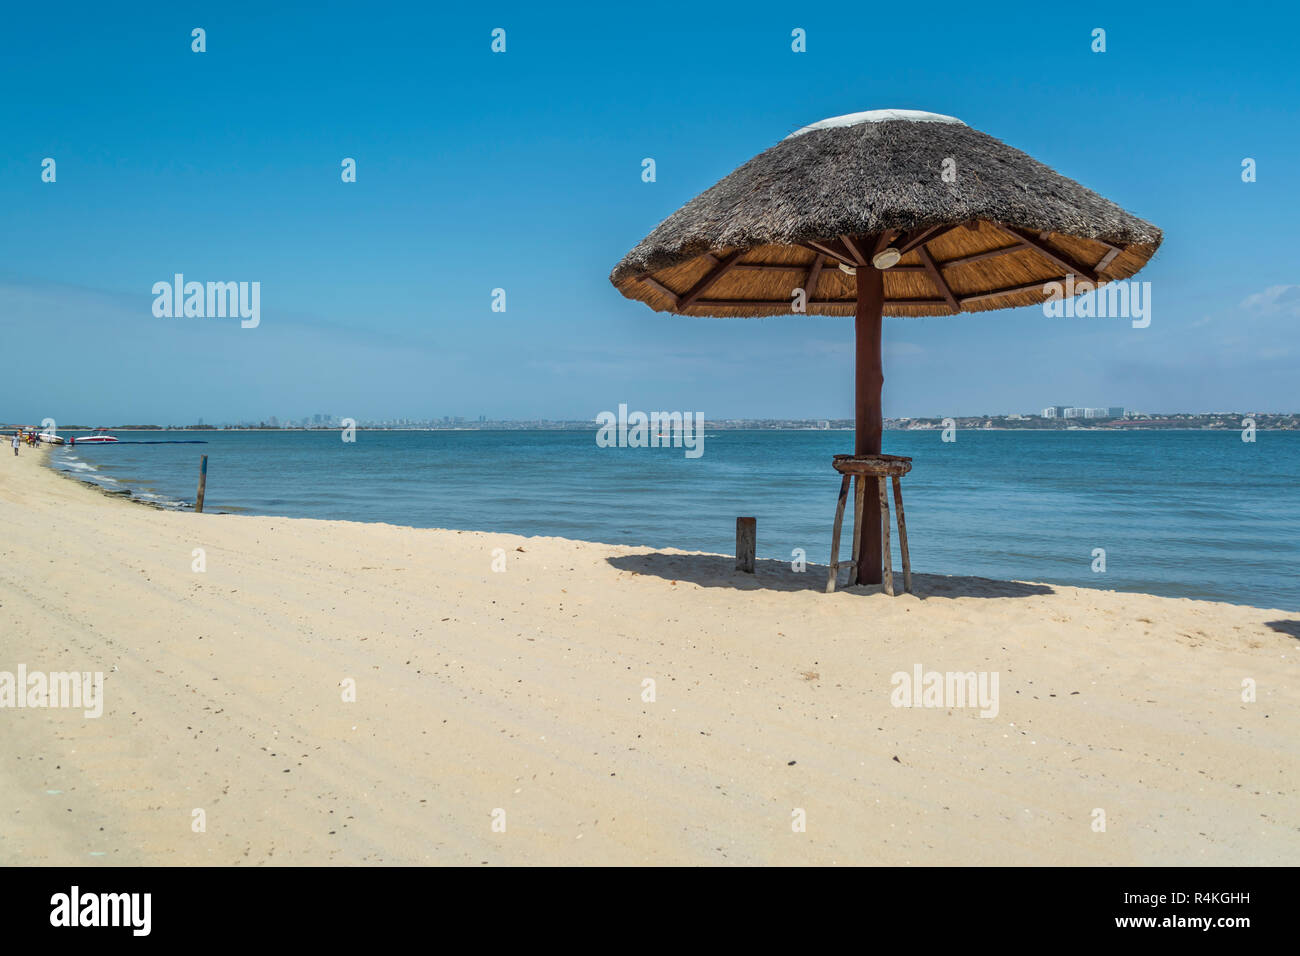 Straw parasol on tropical and paradisiac beach, in Angola - Stock Image